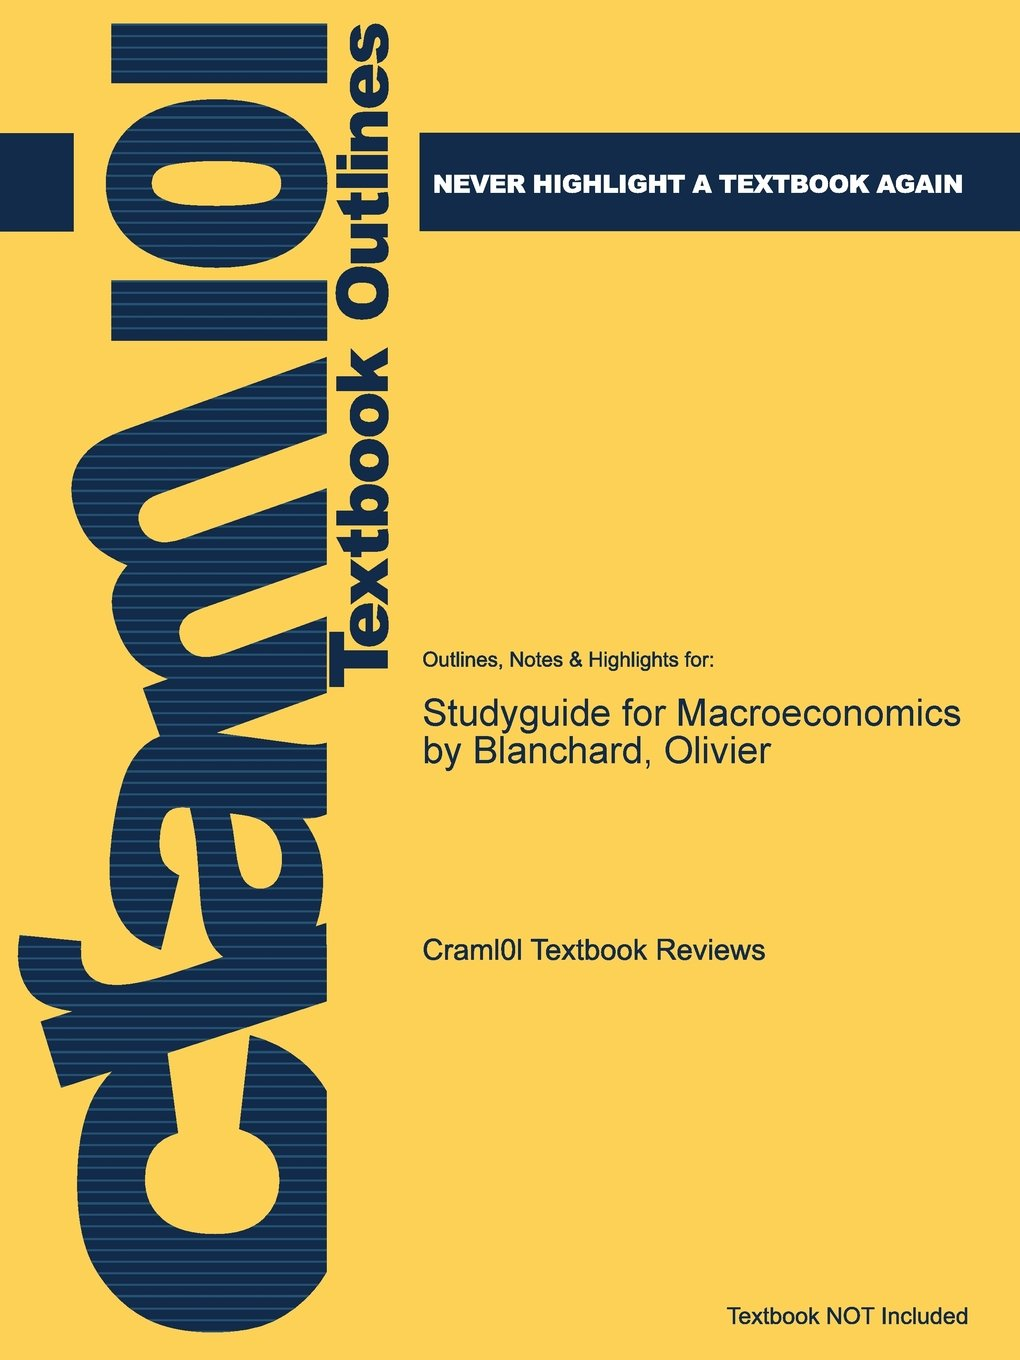 Amazon.in: Buy Studyguide for Macroeconomics by Blanchard, Olivier Book  Online at Low Prices in India | Studyguide for Macroeconomics by Blanchard,  ...